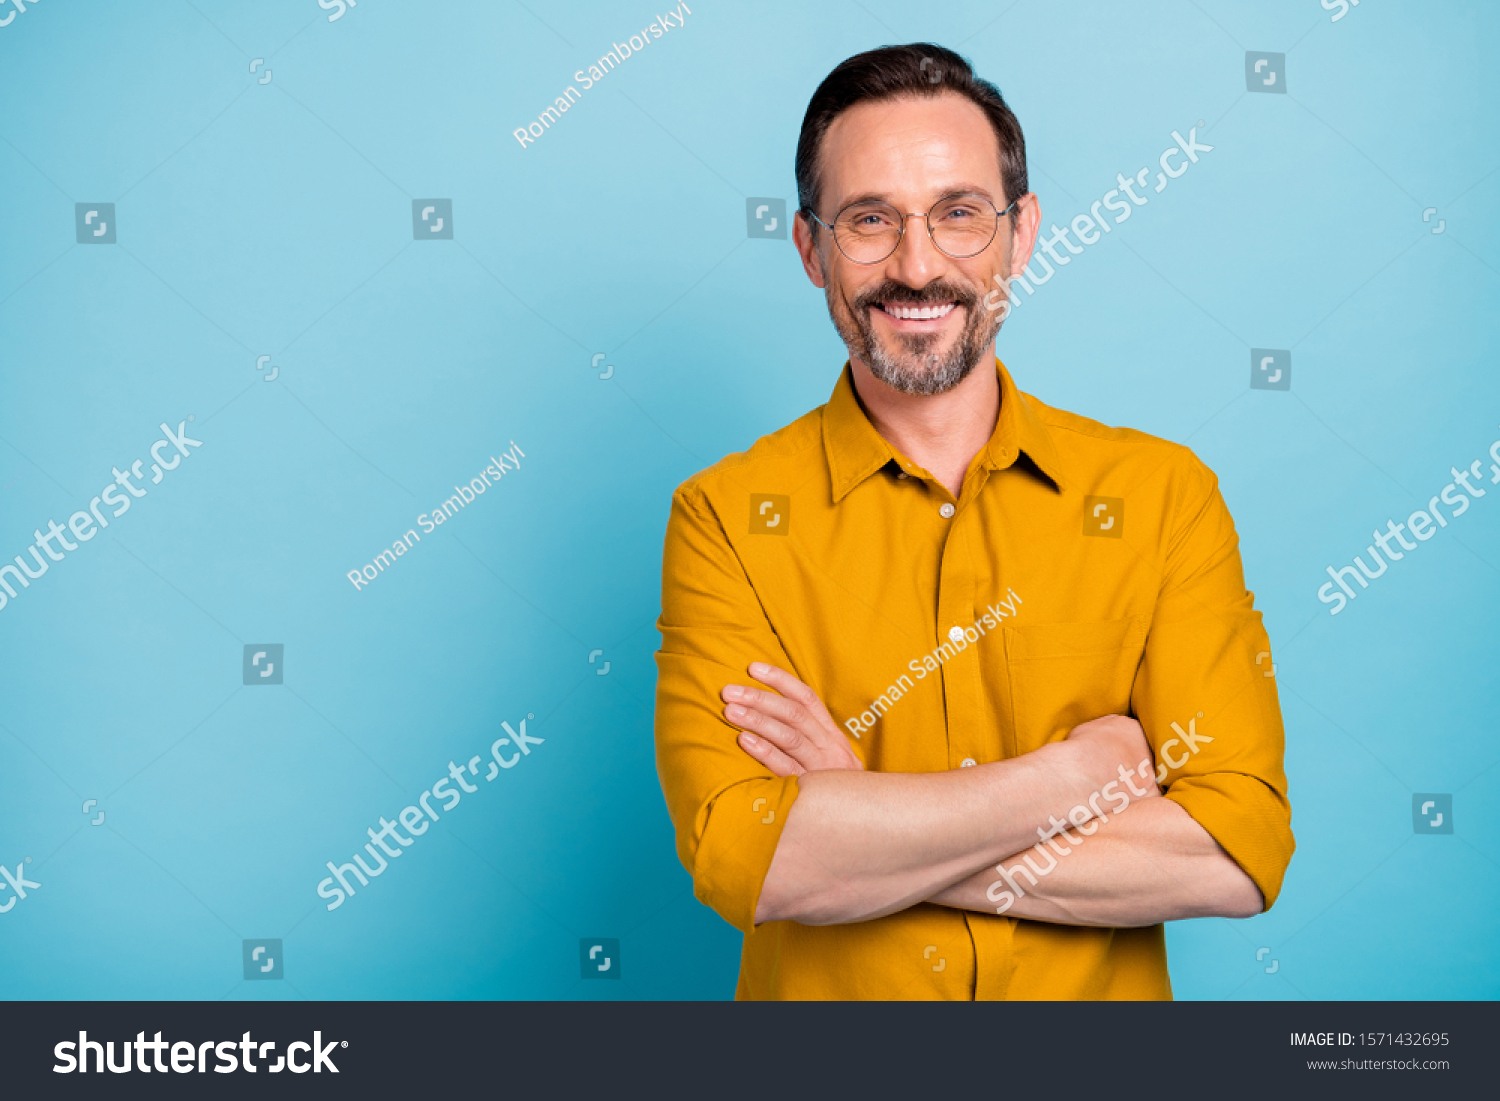 Portrait of charming mature man true boss feel content emotions wear yellow shirt isolated over blue color background #1571432695